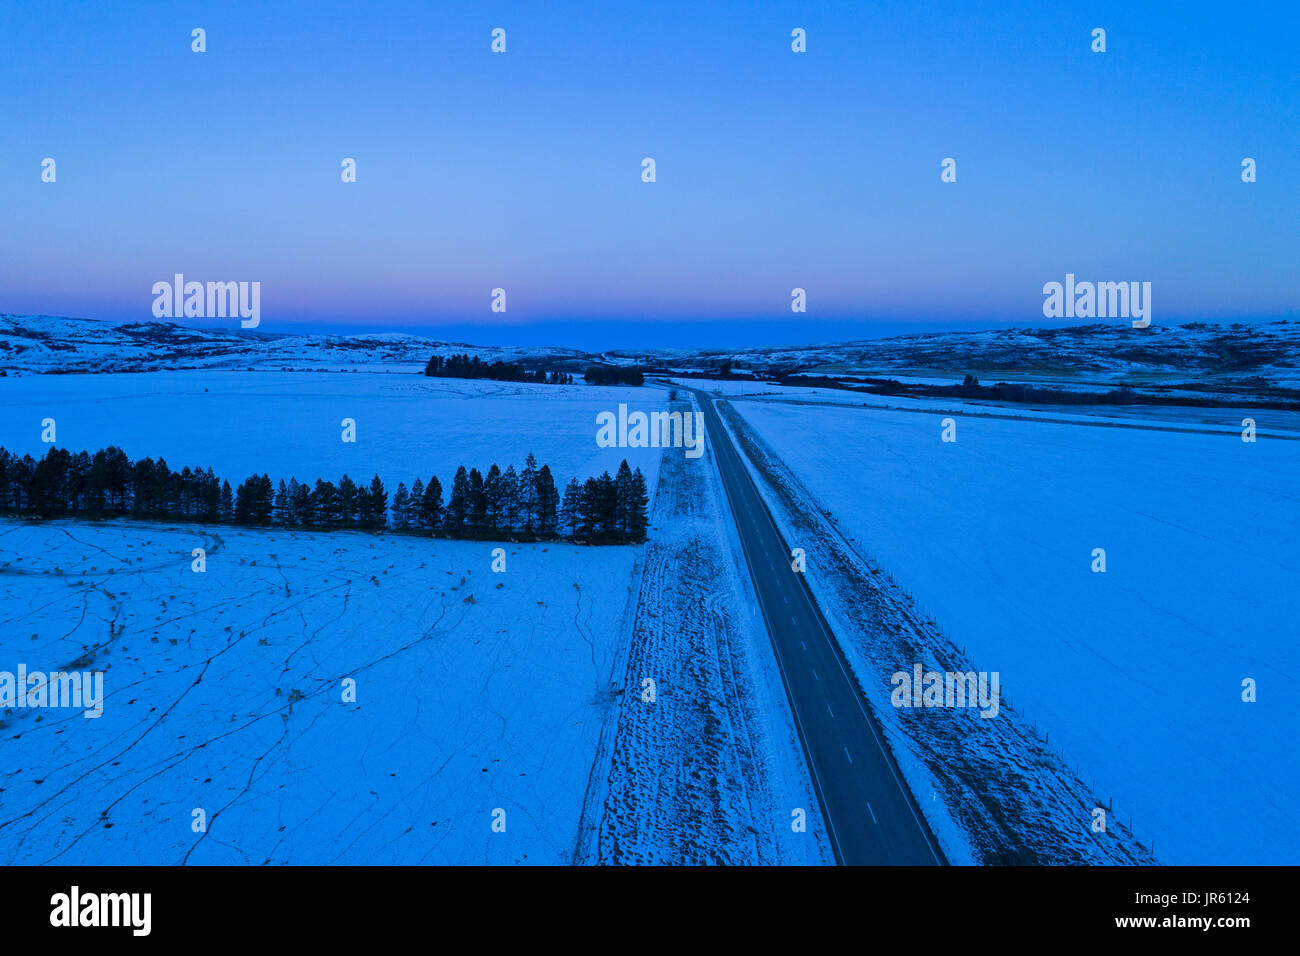 State Highway 85 in winter at sunset, near Oturehua, Maniototo, Central Otago, South Island, New Zealand - drone aerial - Stock Image